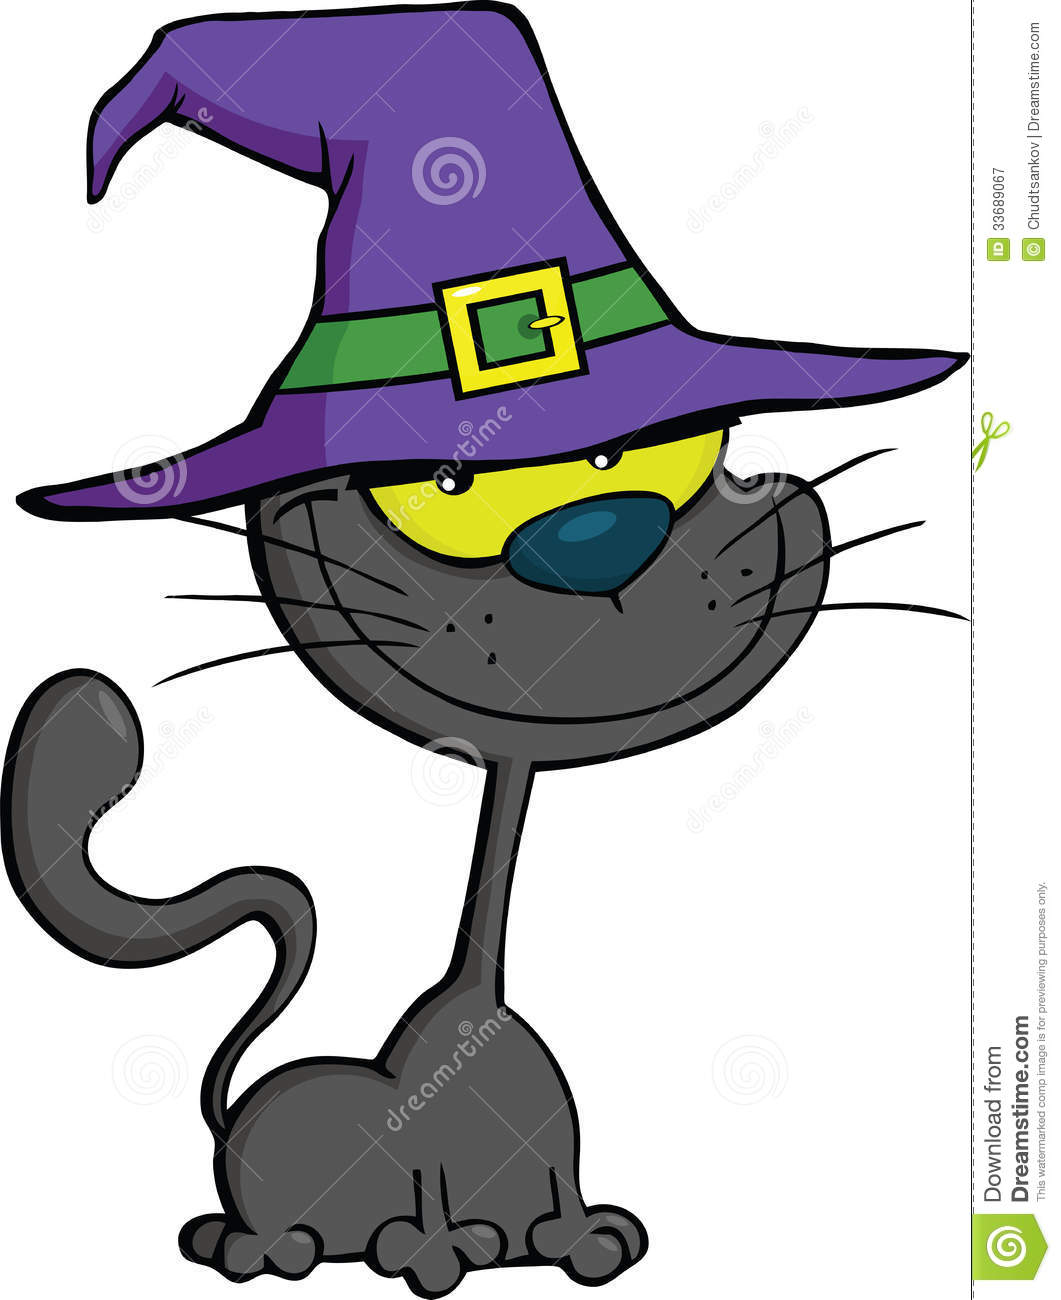 Cat With Witch Hat Cartoon Illustration Royalty Free Stock Photography ...